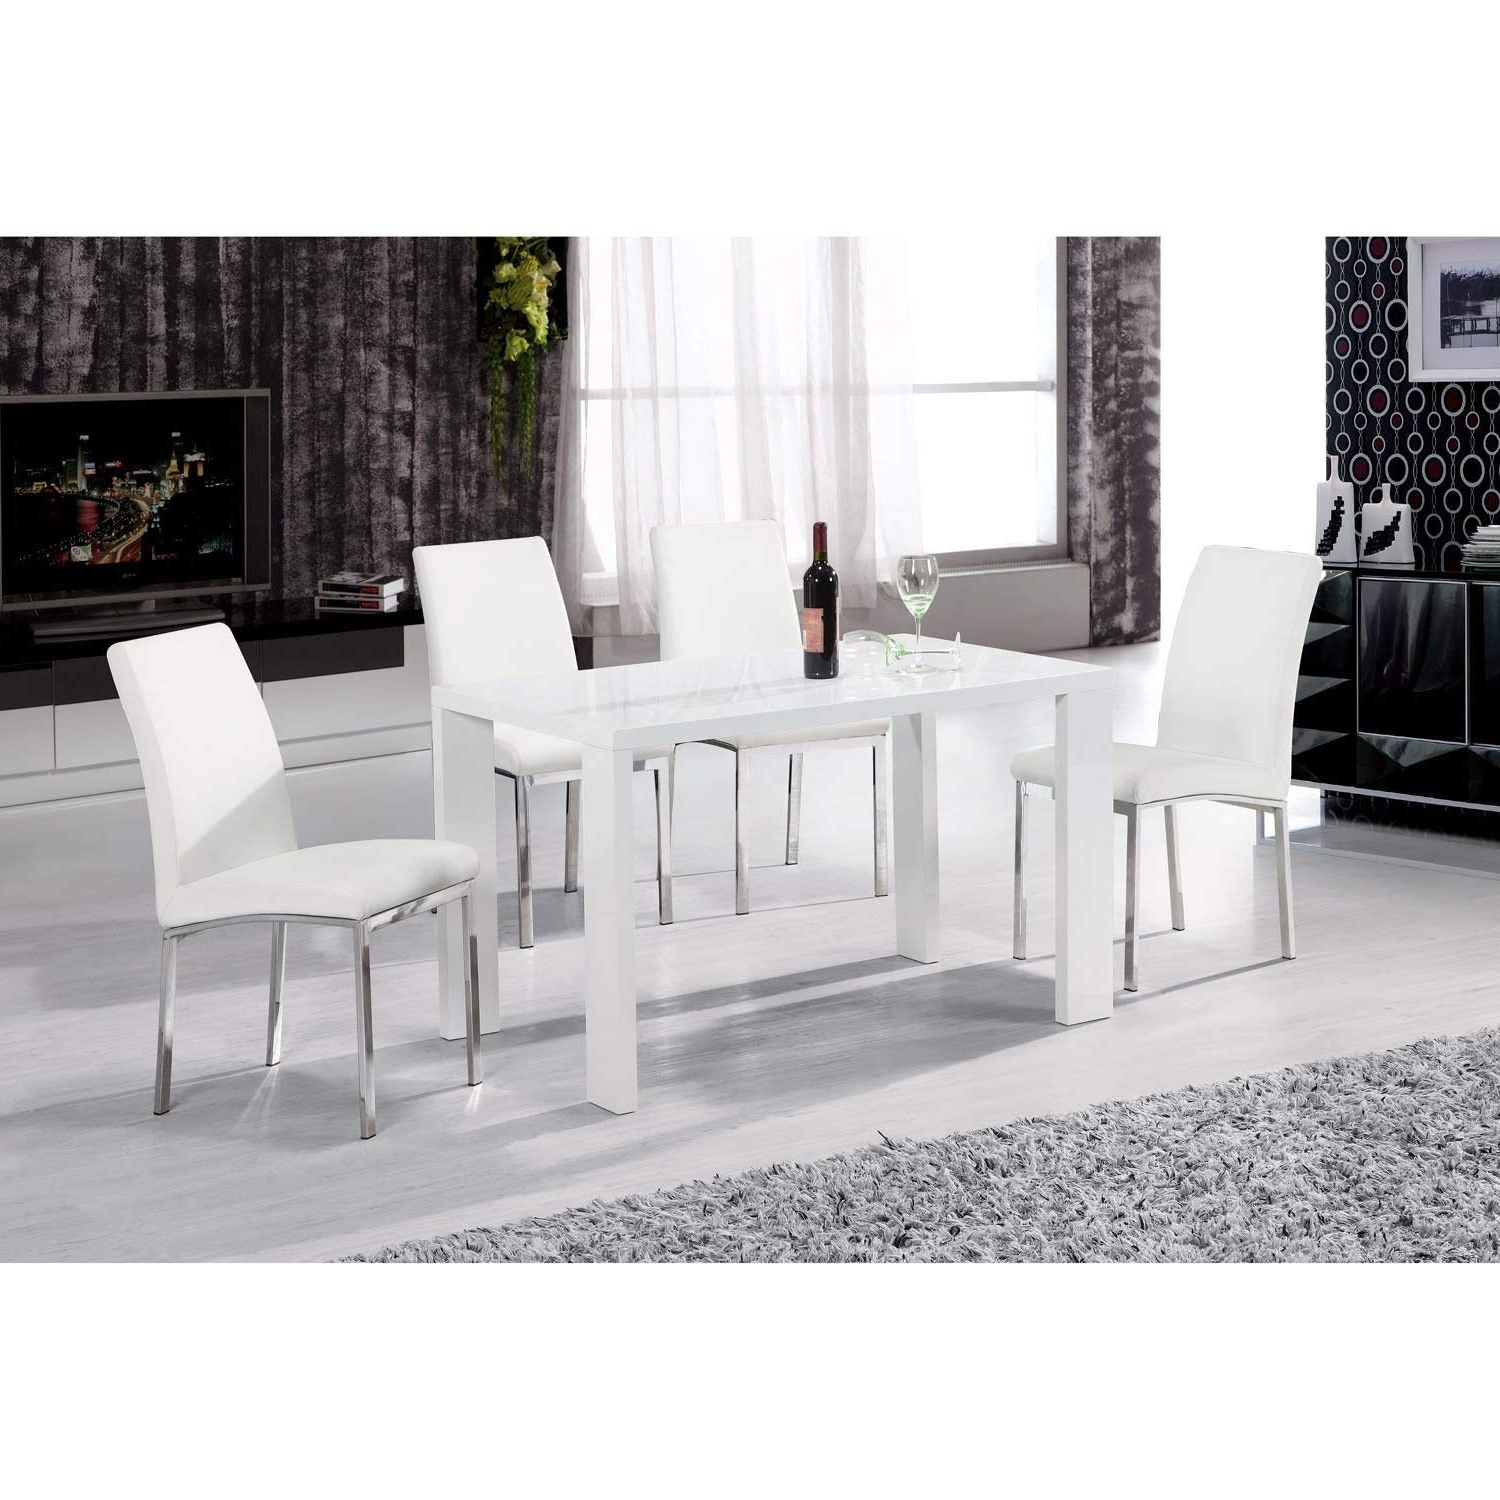 Heartlands Peru White High Gloss 130Cm Dining Table In Wood Pertaining To Most Up To Date White High Gloss Dining Tables And Chairs (View 4 of 25)